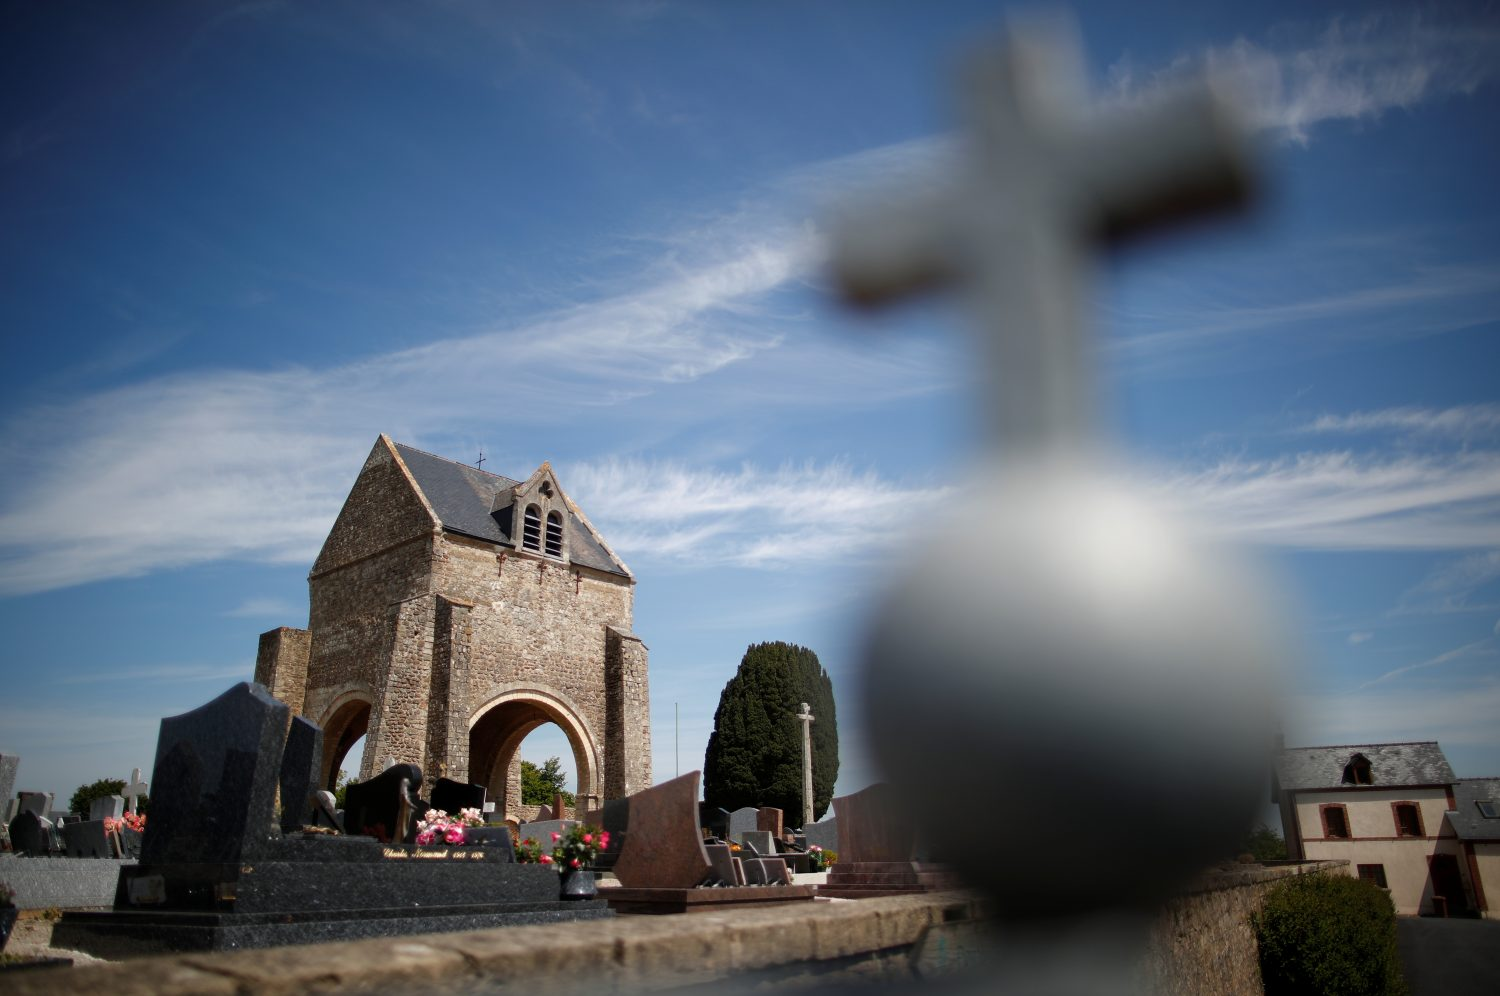 A general view shows remains of the former church at the memorial of Graignes, in Graignes, France May 15, 2019. Picture taken May 15, 2019. REUTERS/Christian Hartmann